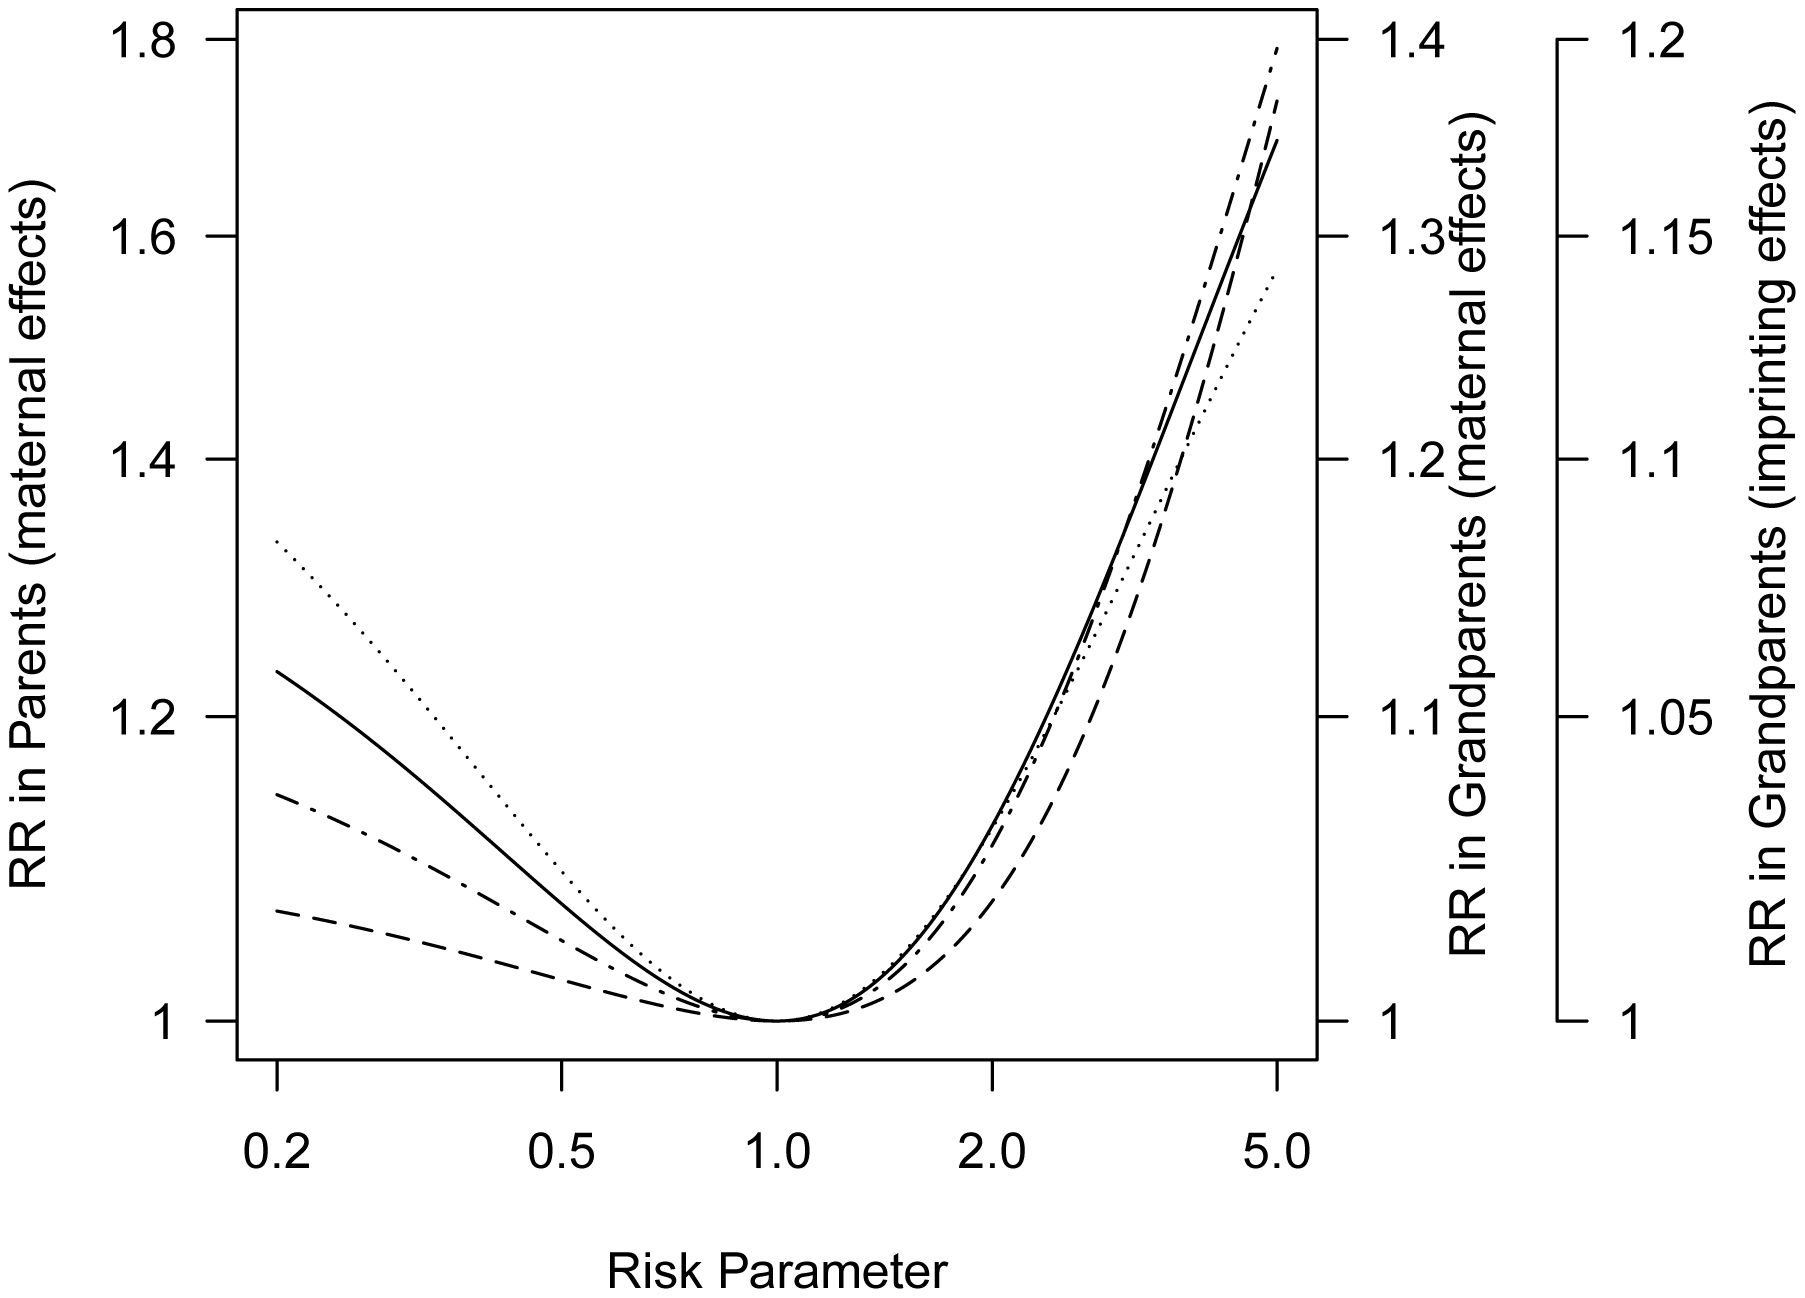 Progenitors relative risk (mothers versus fathers or maternal grandmothers versus paternal grandmothers) as a function of maternally mediated relative risk () under a log-additive risk model (), or the imprinting relative risk, <i>I</i>, for allele frequency 0.2 for a locus for which only a specific parental copy is expressed.